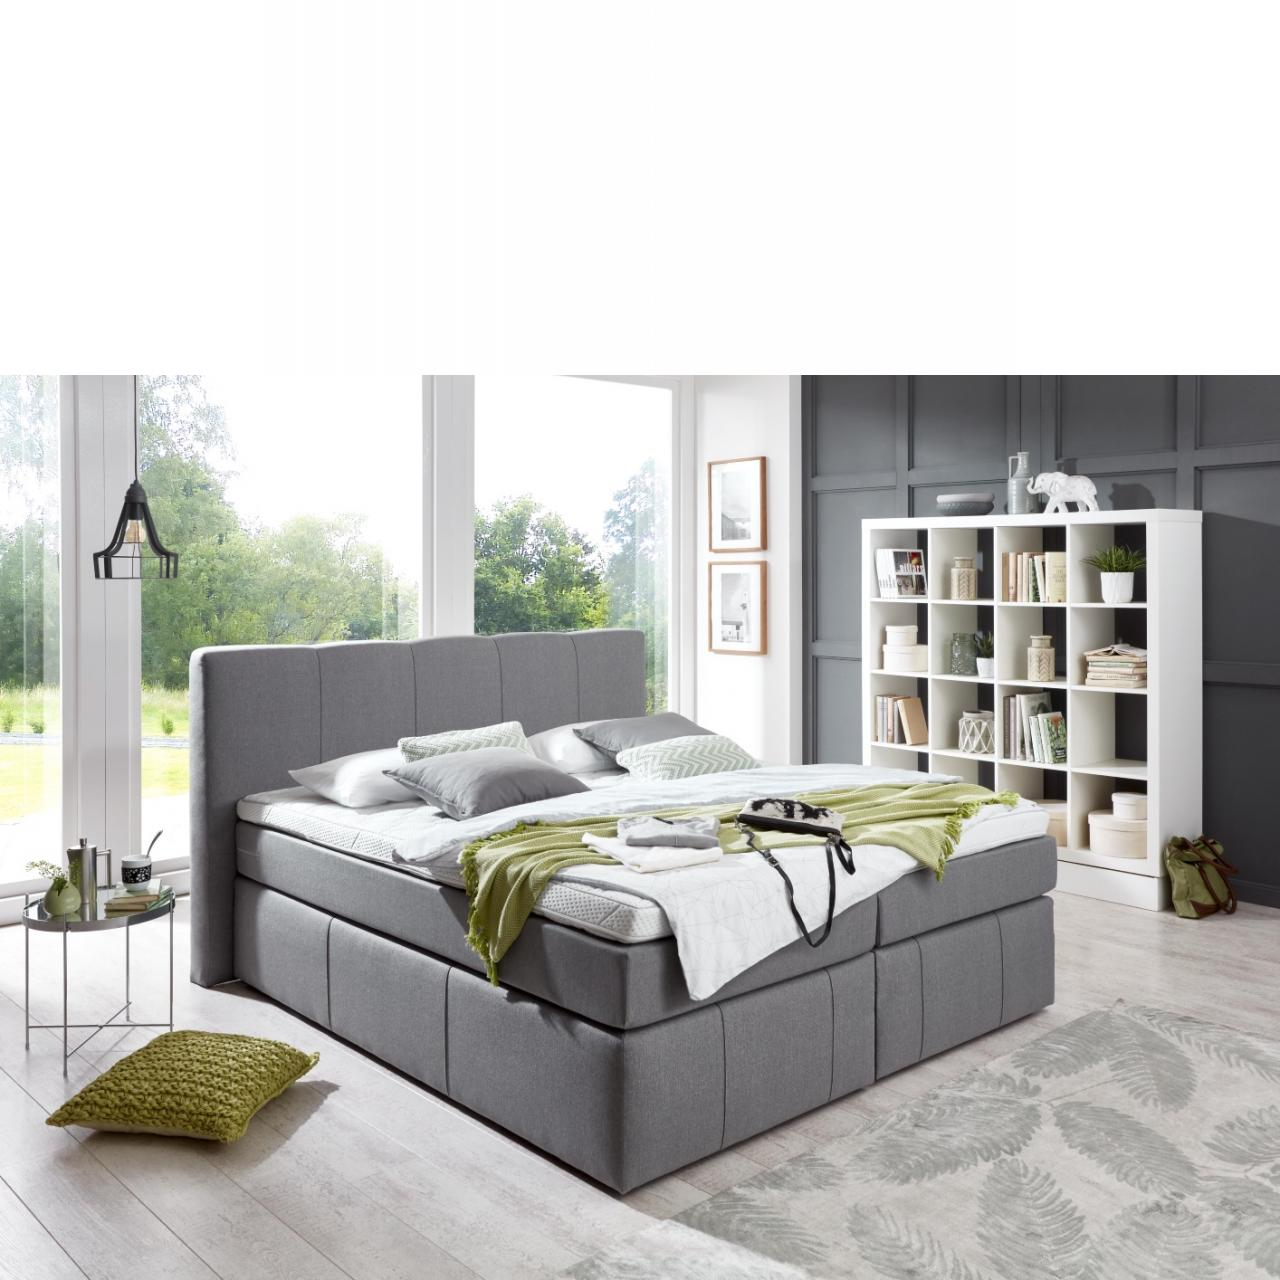 gro artig king size lattenrahmen bilder bilderrahmen ideen. Black Bedroom Furniture Sets. Home Design Ideas